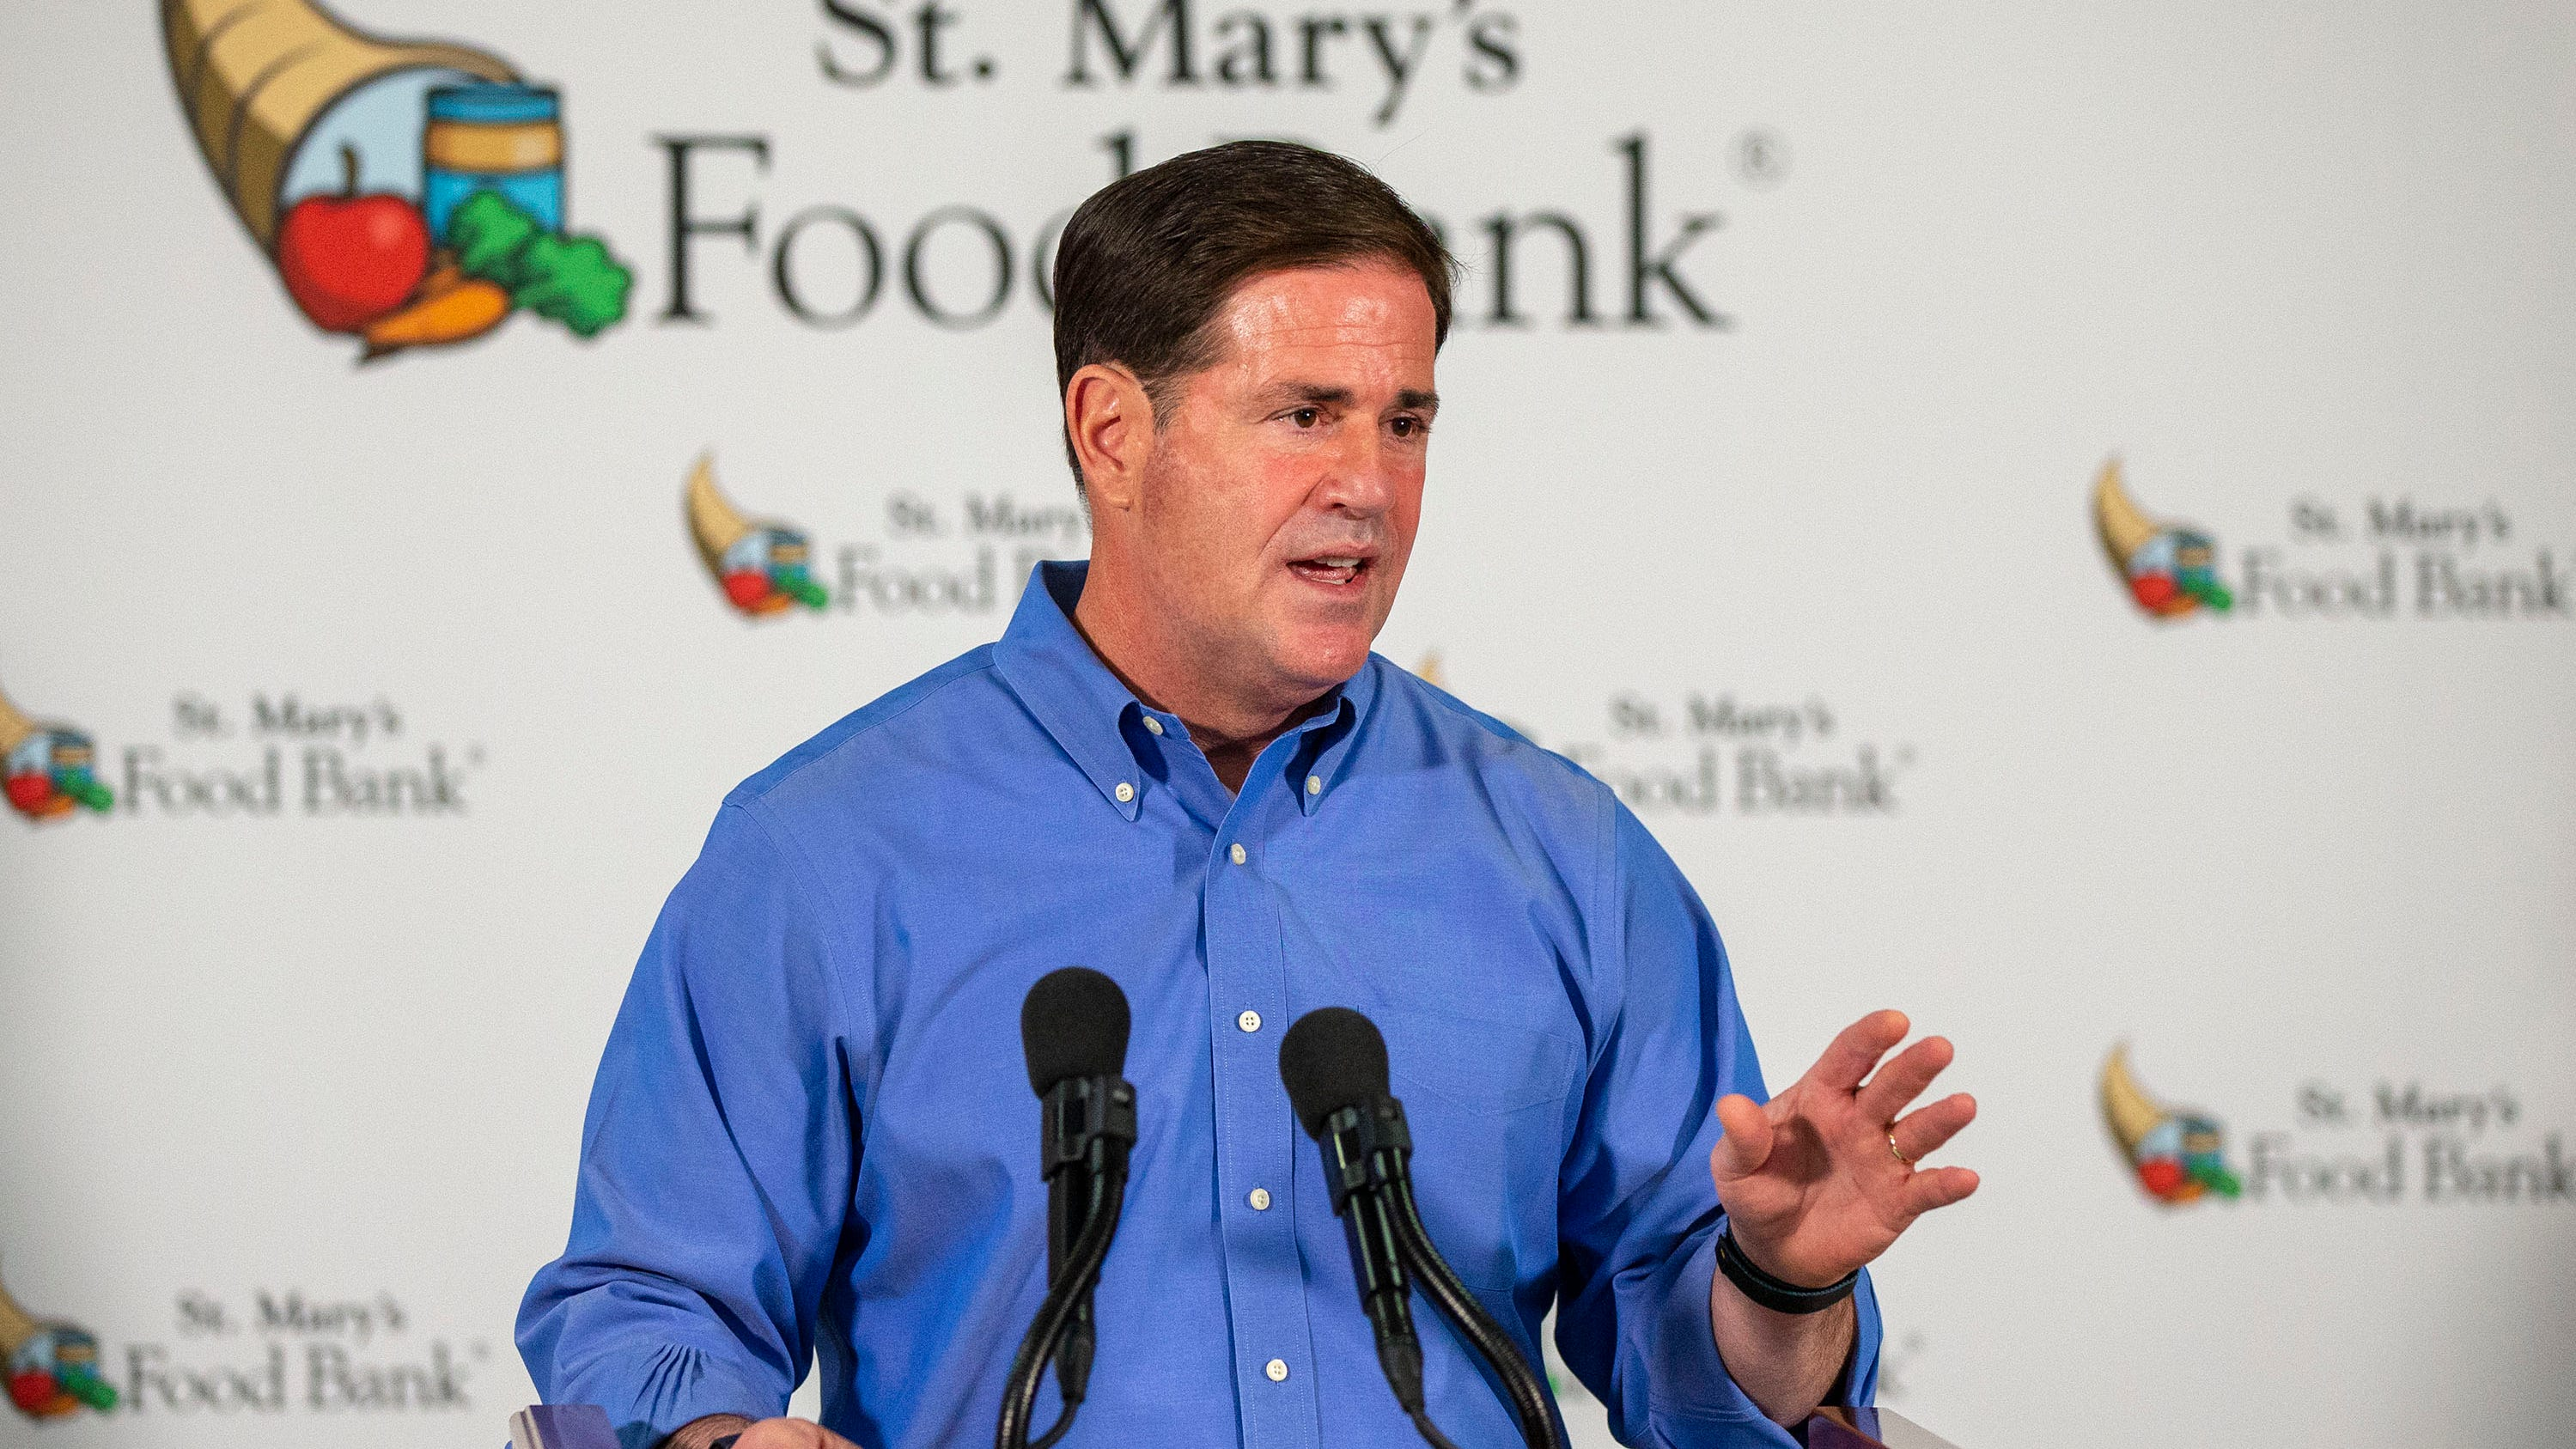 Ducey warns public on COVID-19, won't issue new restrictions